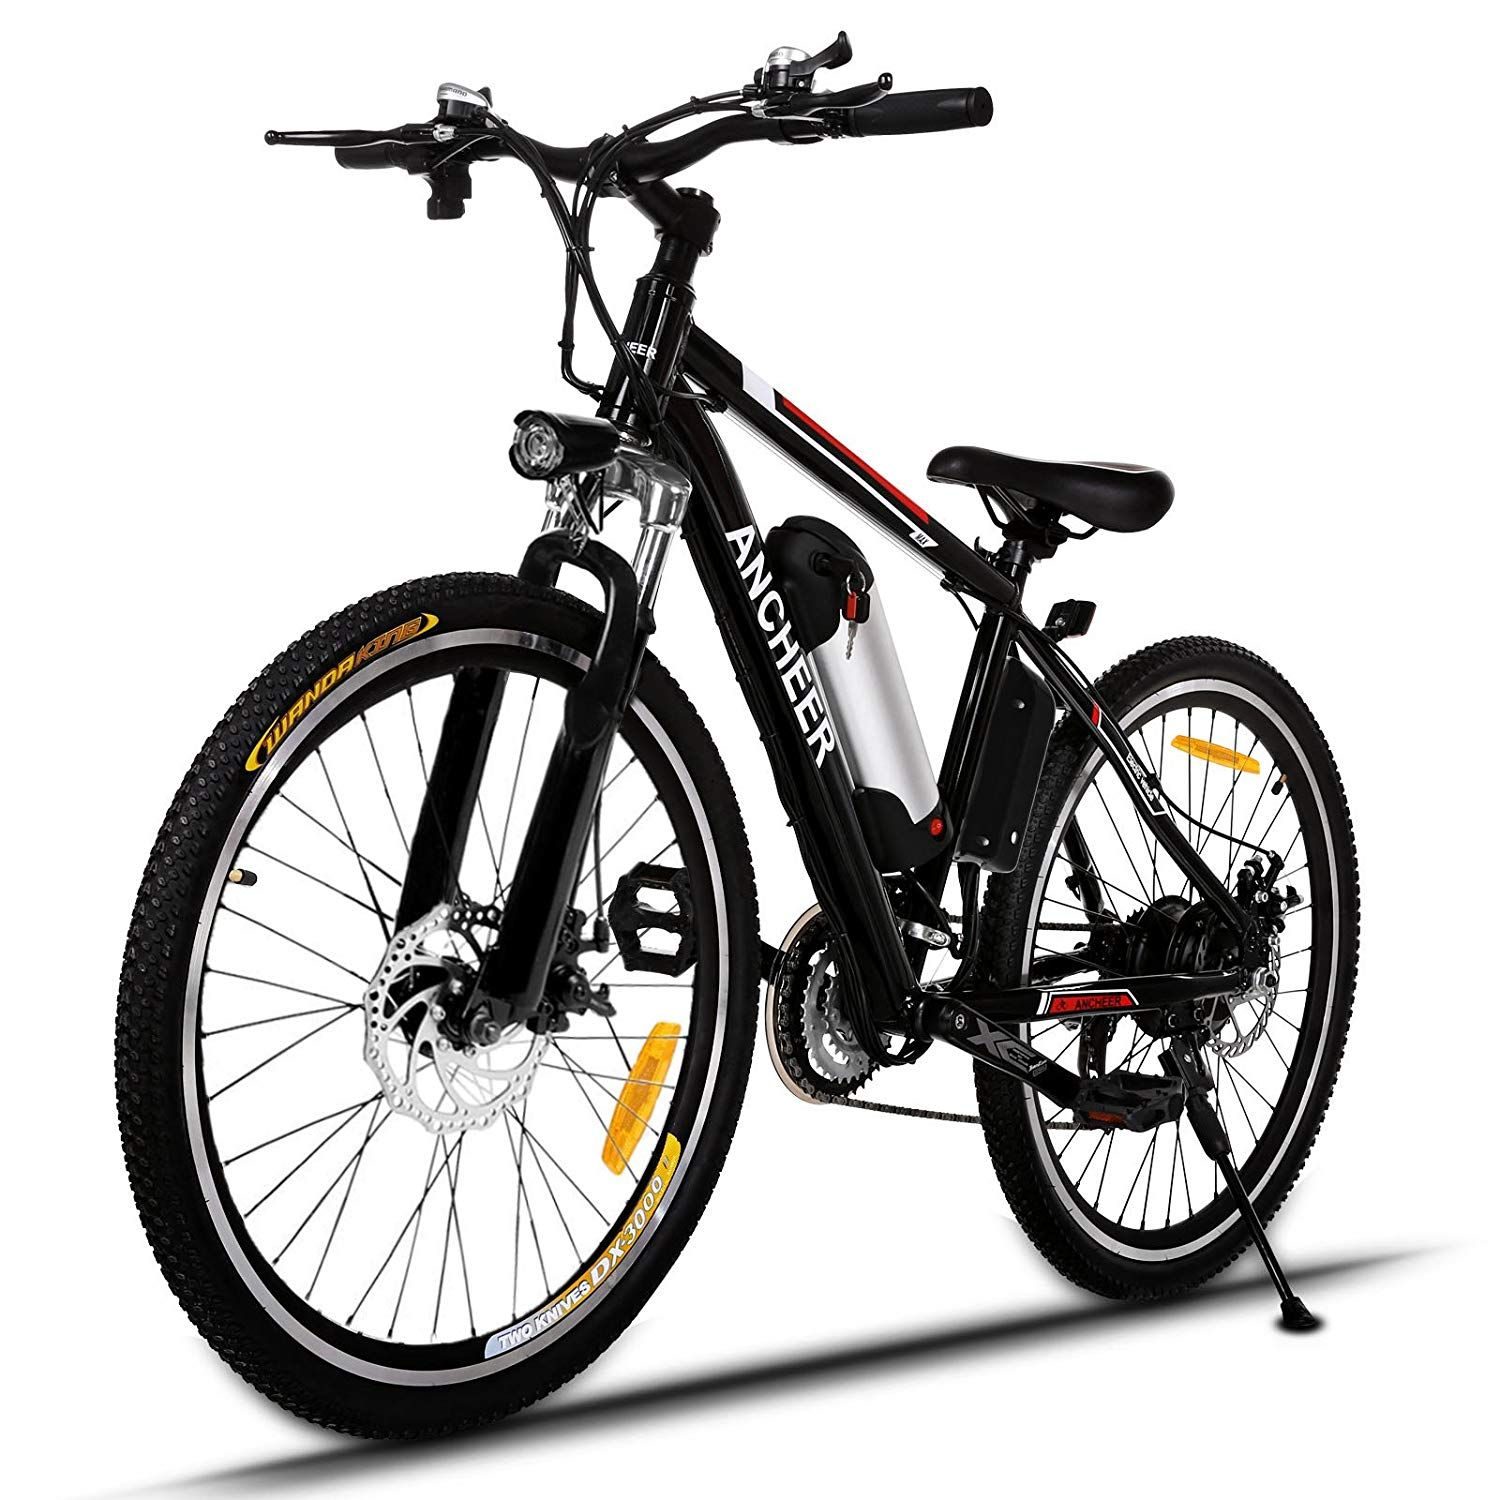 Electric System Equipped With The 36v 8ah Lithium Ion Removable Battery And 250w Stable Motor Electric Mountain Bike Best Electric Bikes Electric Bicycle